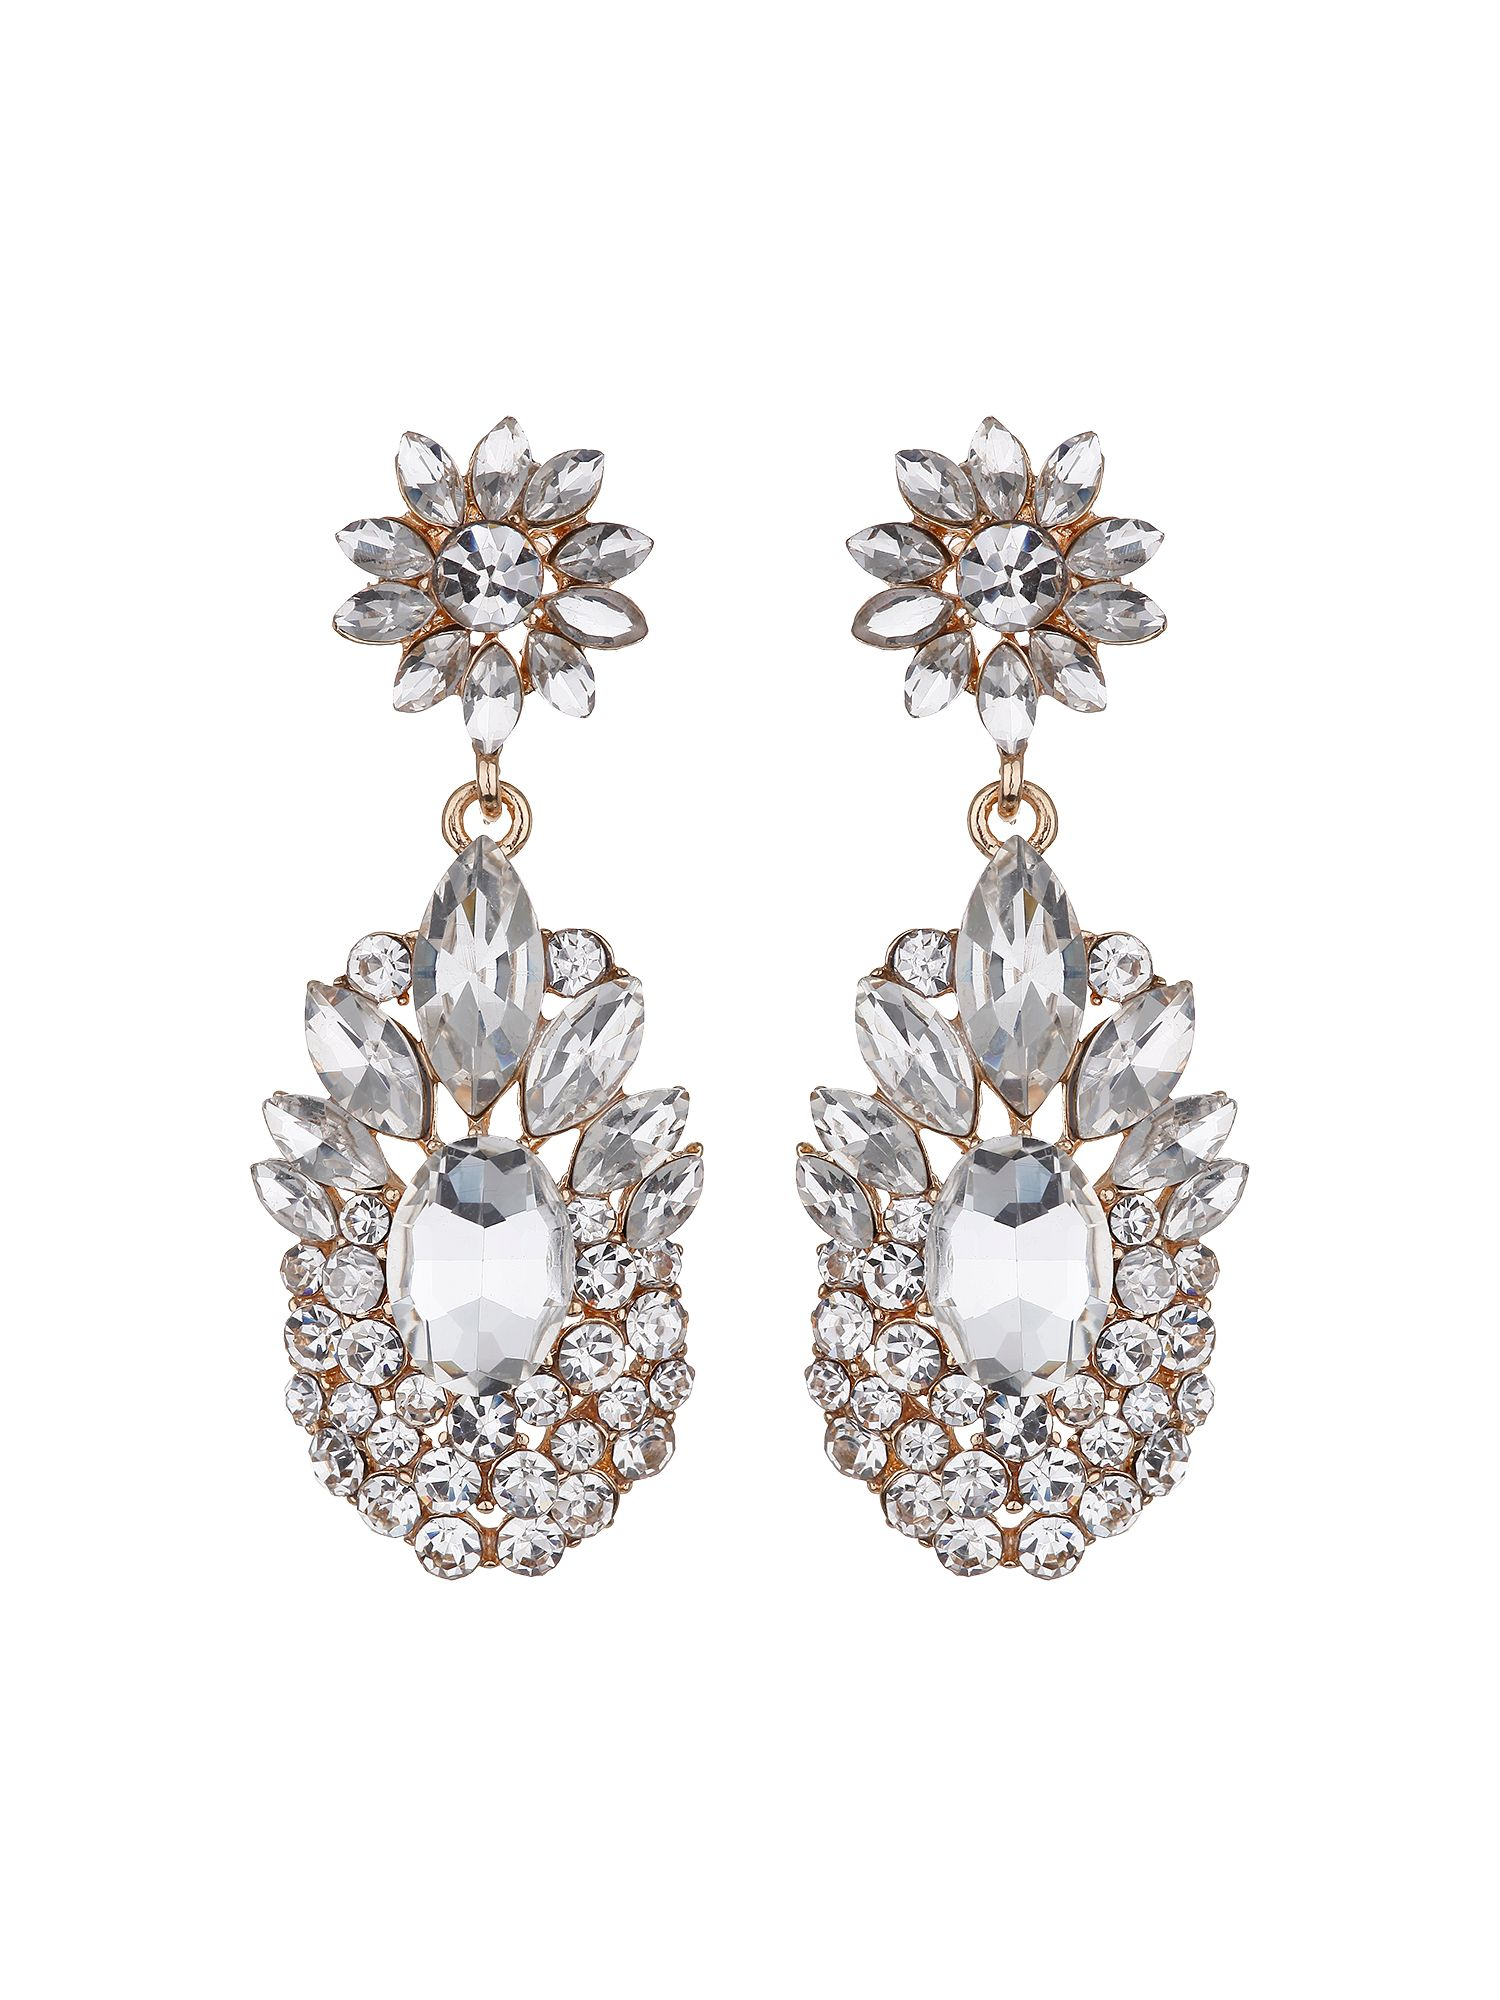 Alloy Flower Jewelry House of Fraser